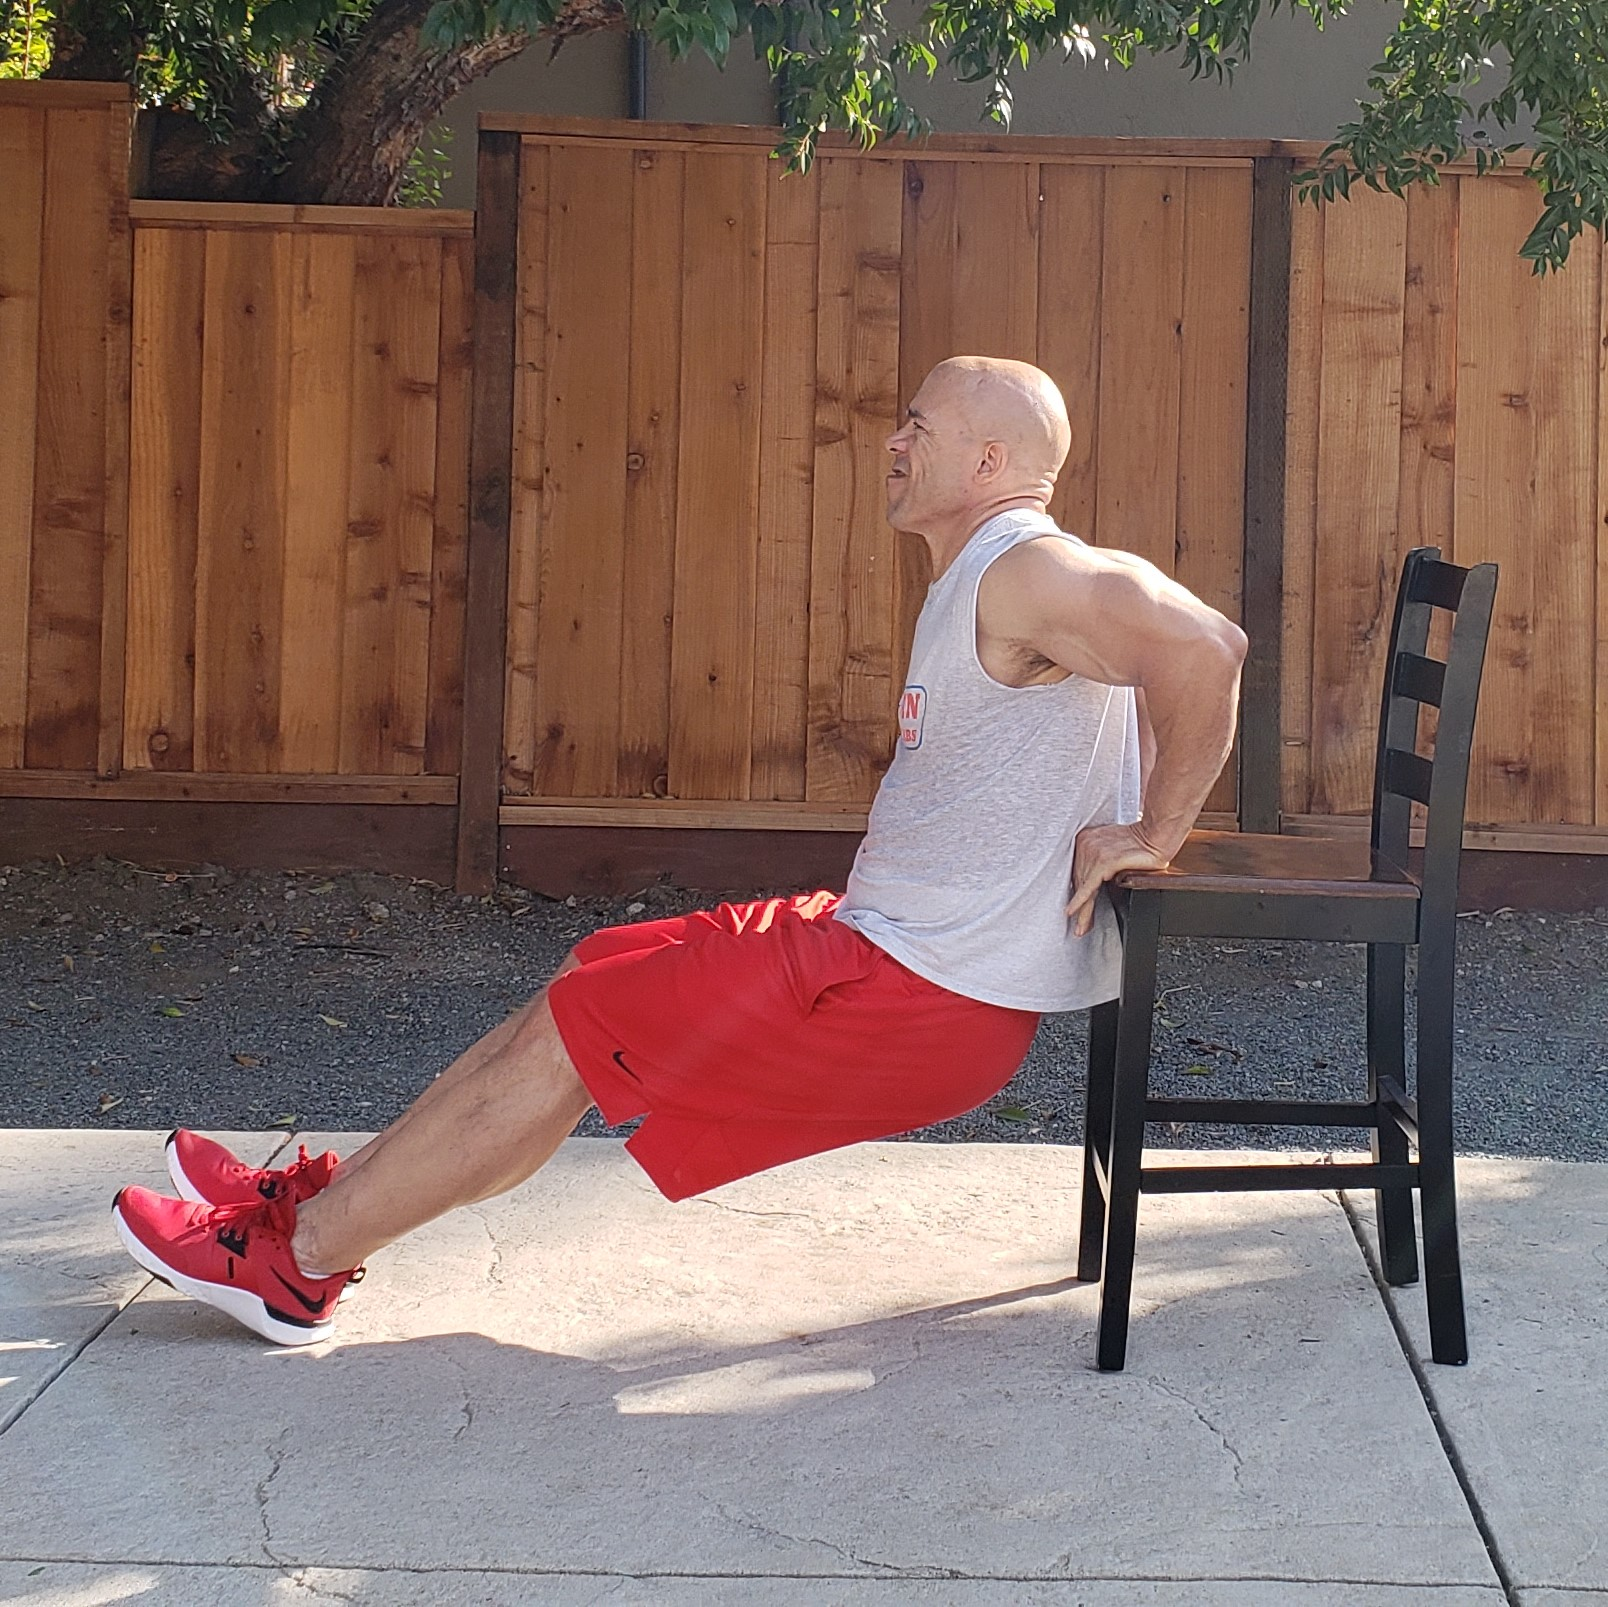 5 dips 15 x 15 x 15 Workouts For Older Men HOME Gym Workout #4